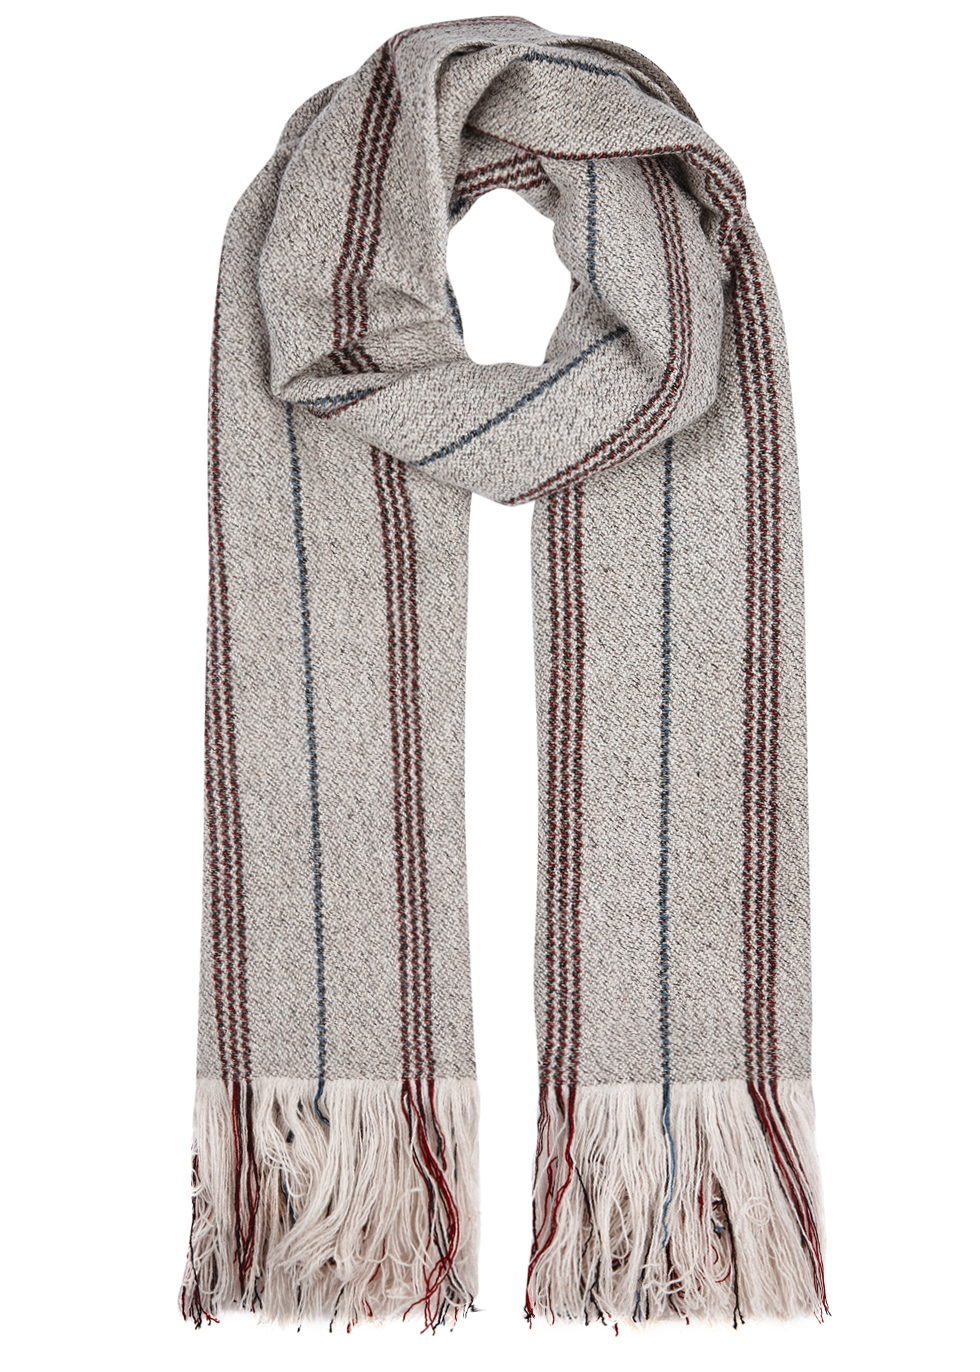 Alva Wool And Cashmere Blend Scarf - secondary colour: yellow; predominant colour: light grey; occasions: casual; type of pattern: light; style: regular; size: standard; material: knits; embellishment: tassels; pattern: striped; multicoloured: multicoloured; season: a/w 2016; wardrobe: highlight